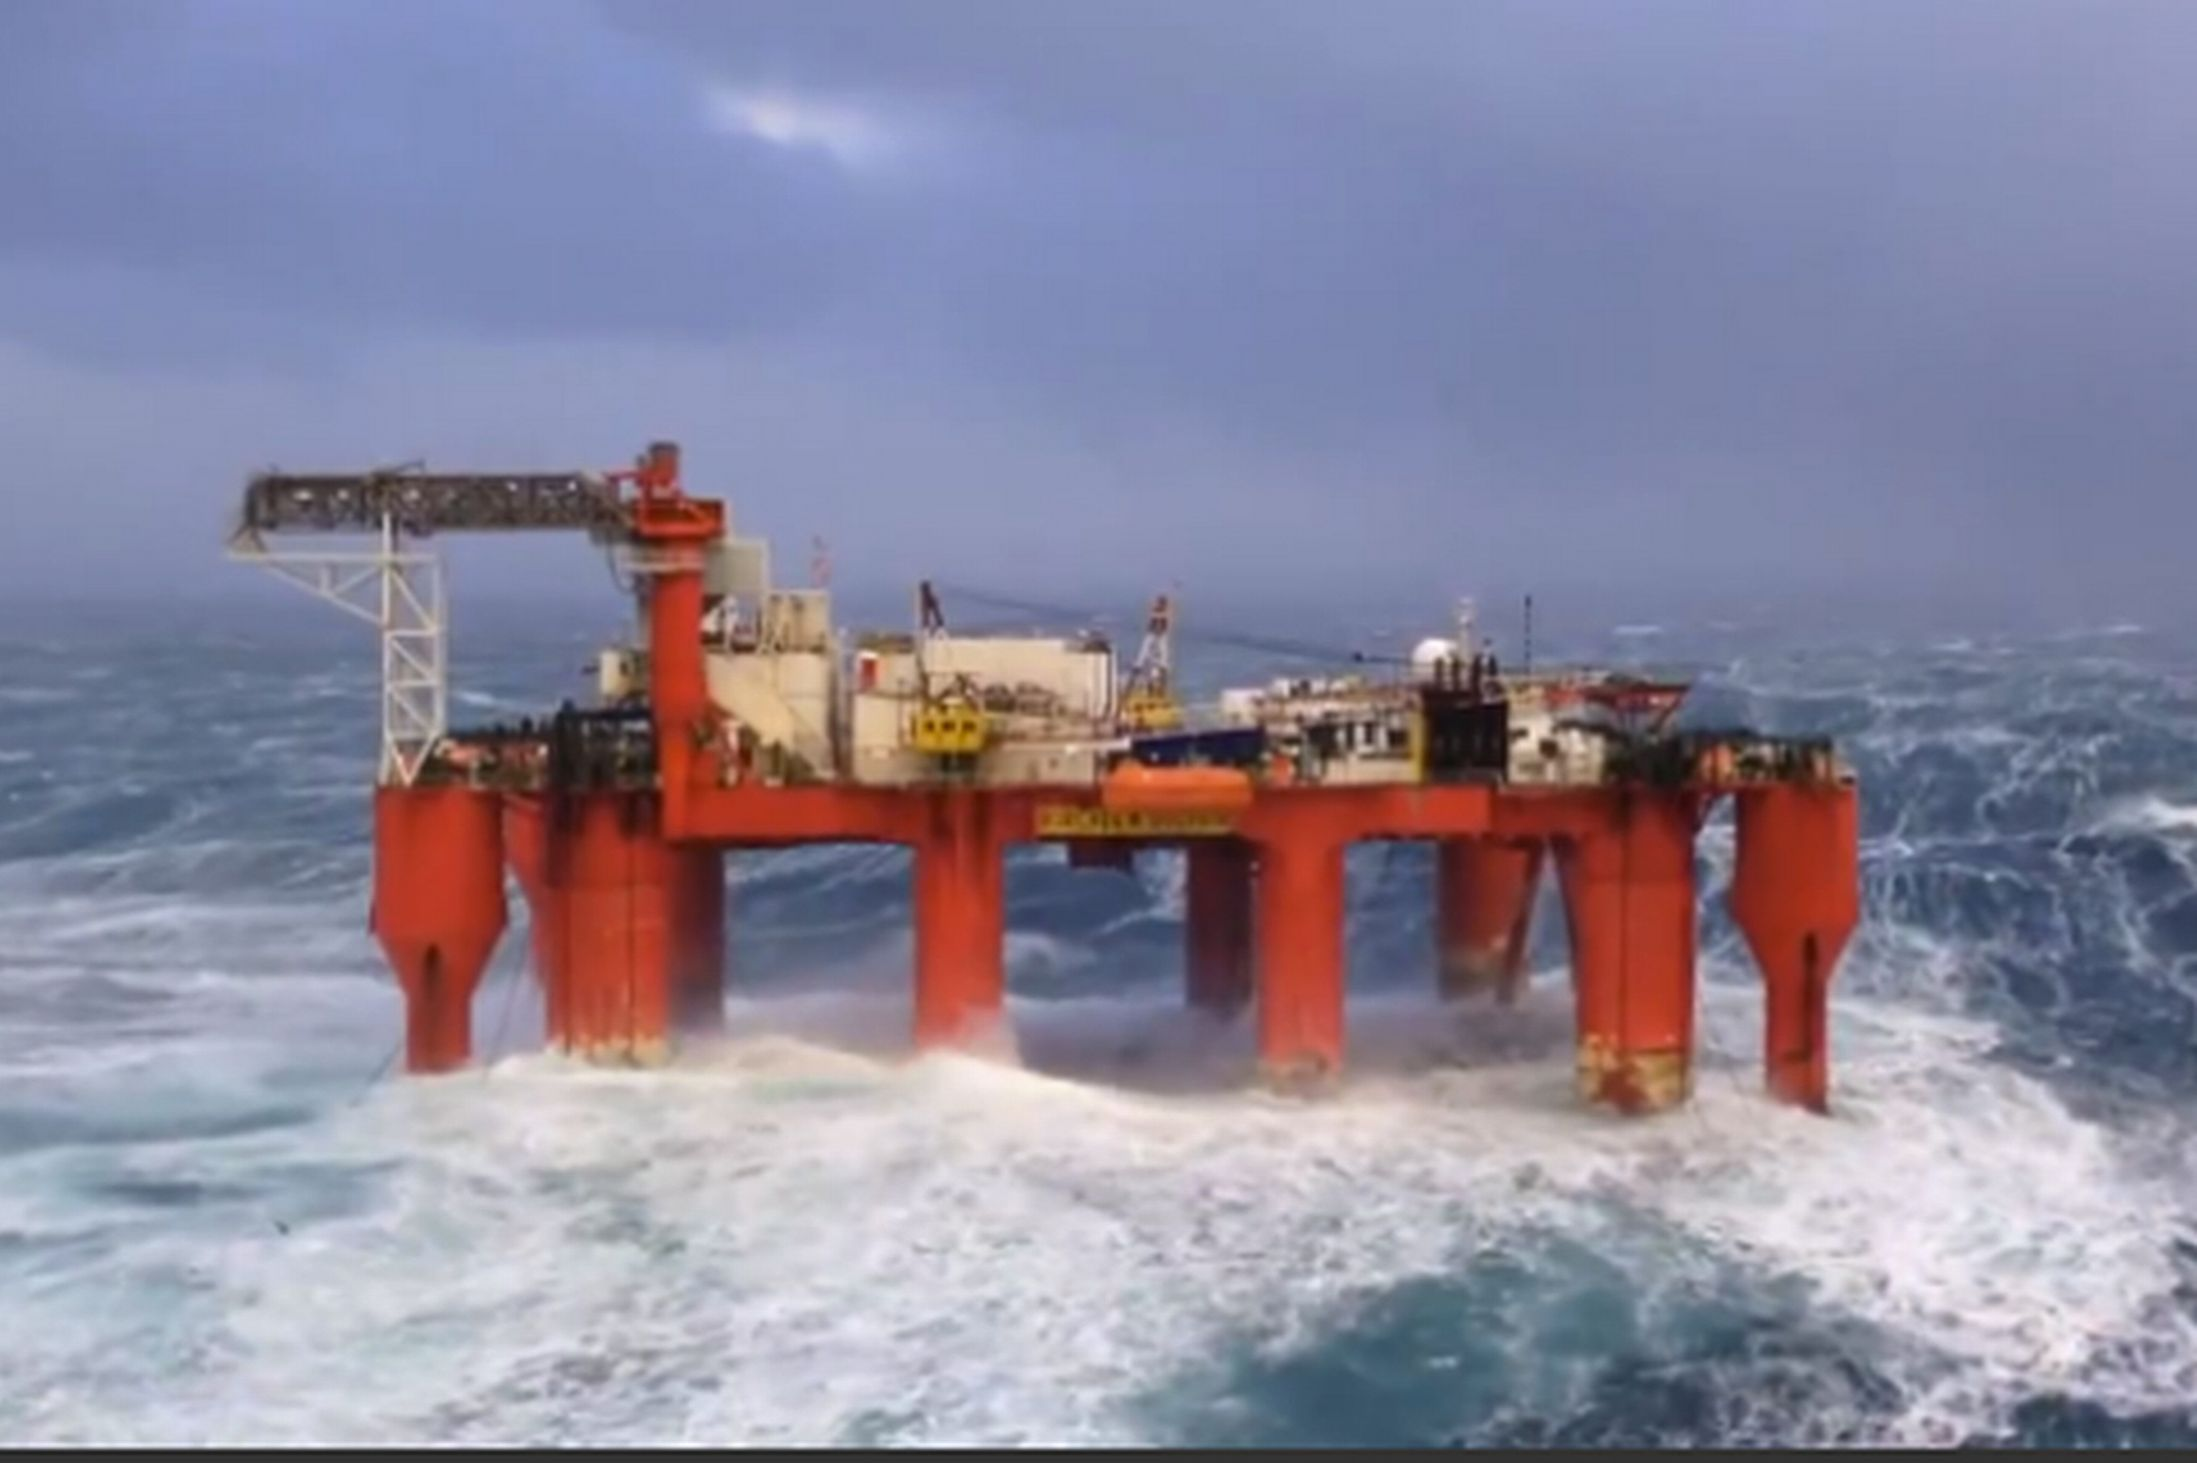 Could you work on this North Sea oil rig? Watch waves crash over structure in terrifying clip - UK news - NewsLocker